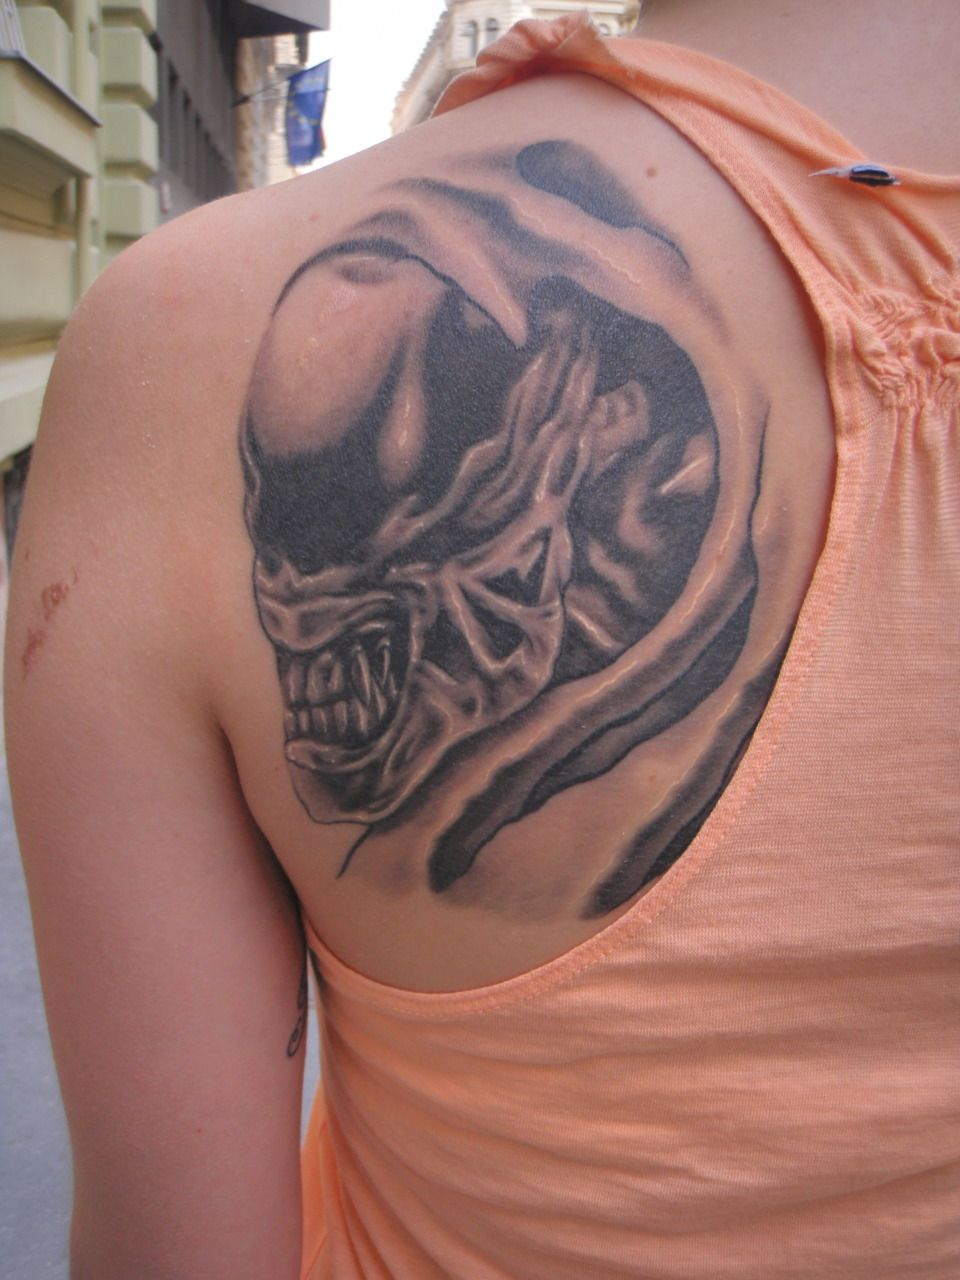 Hr giger tattoo designs - H R Giger Alien Tattoo Done By Tam S K Ves Bpink Budapest Hungary